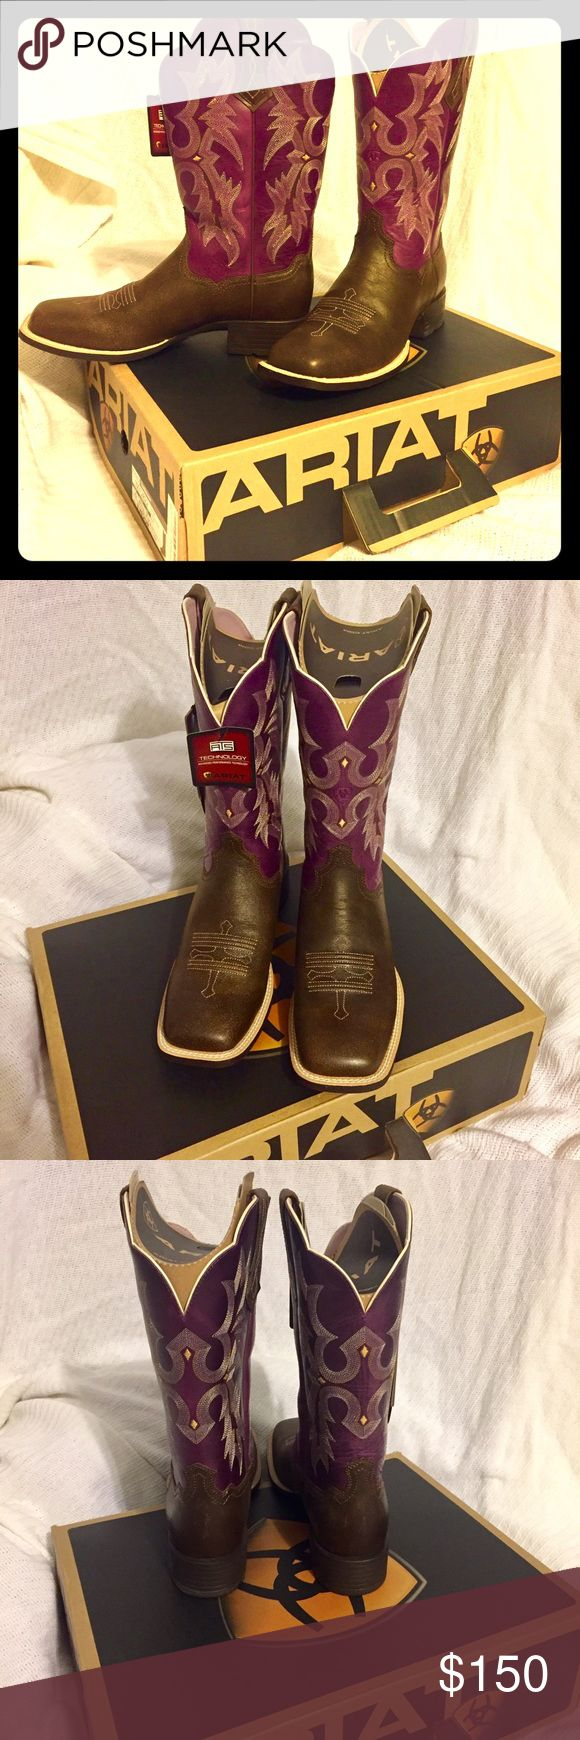 NWT Ariat Square Toe Boots Everyone knows Ariat makes the best & most comfortable boots around. And as a bonus they last forever. These babies are square toe as shown above.                                                                     Tags : western cowboy cowgirl square toe pull on ridding purple brown Ariat Shoes